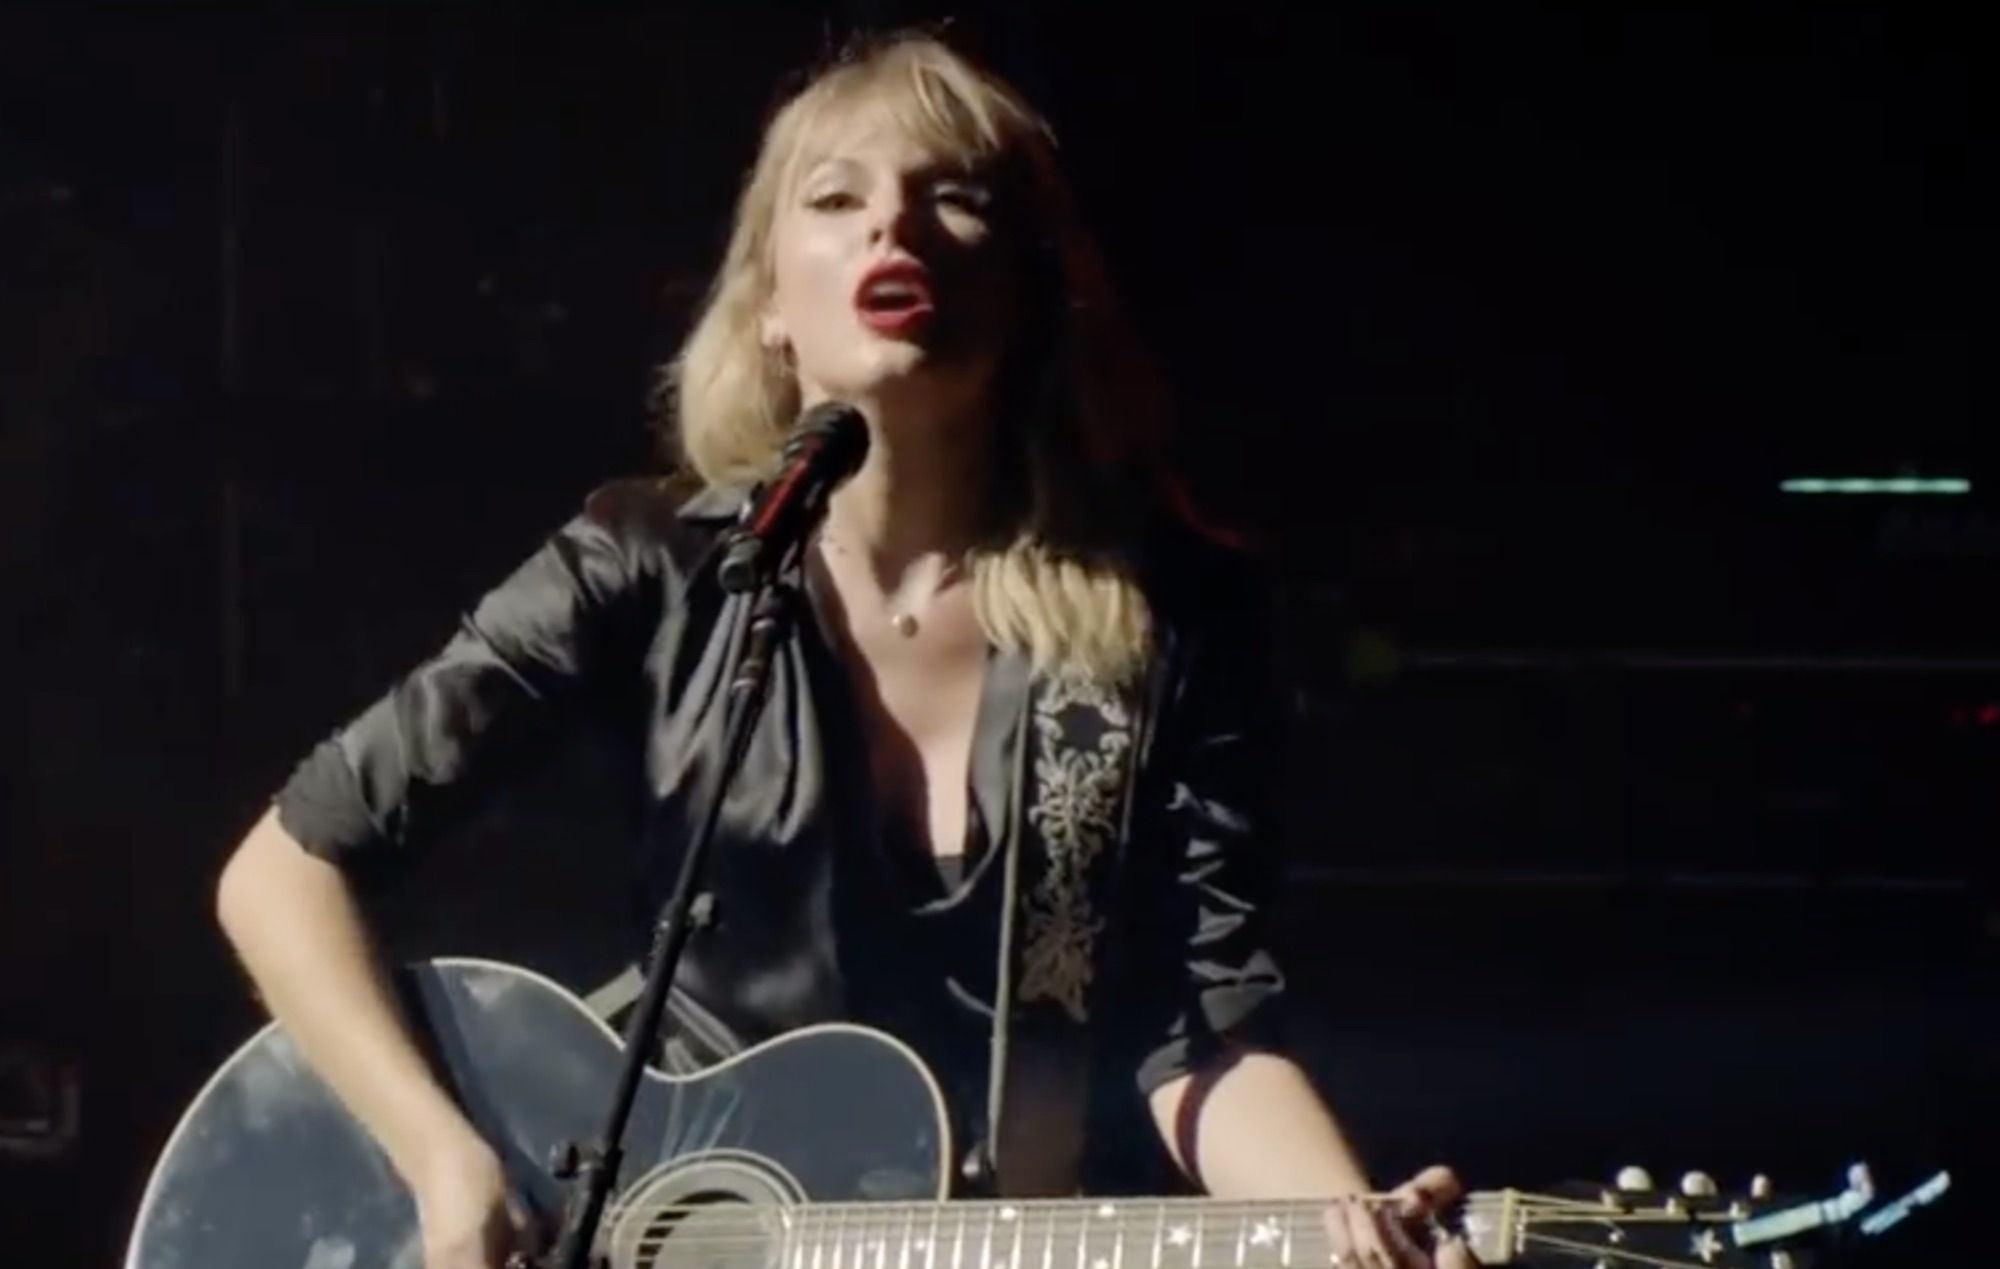 Taylor Swift shares acoustic performance of 'The Man' live from Paris